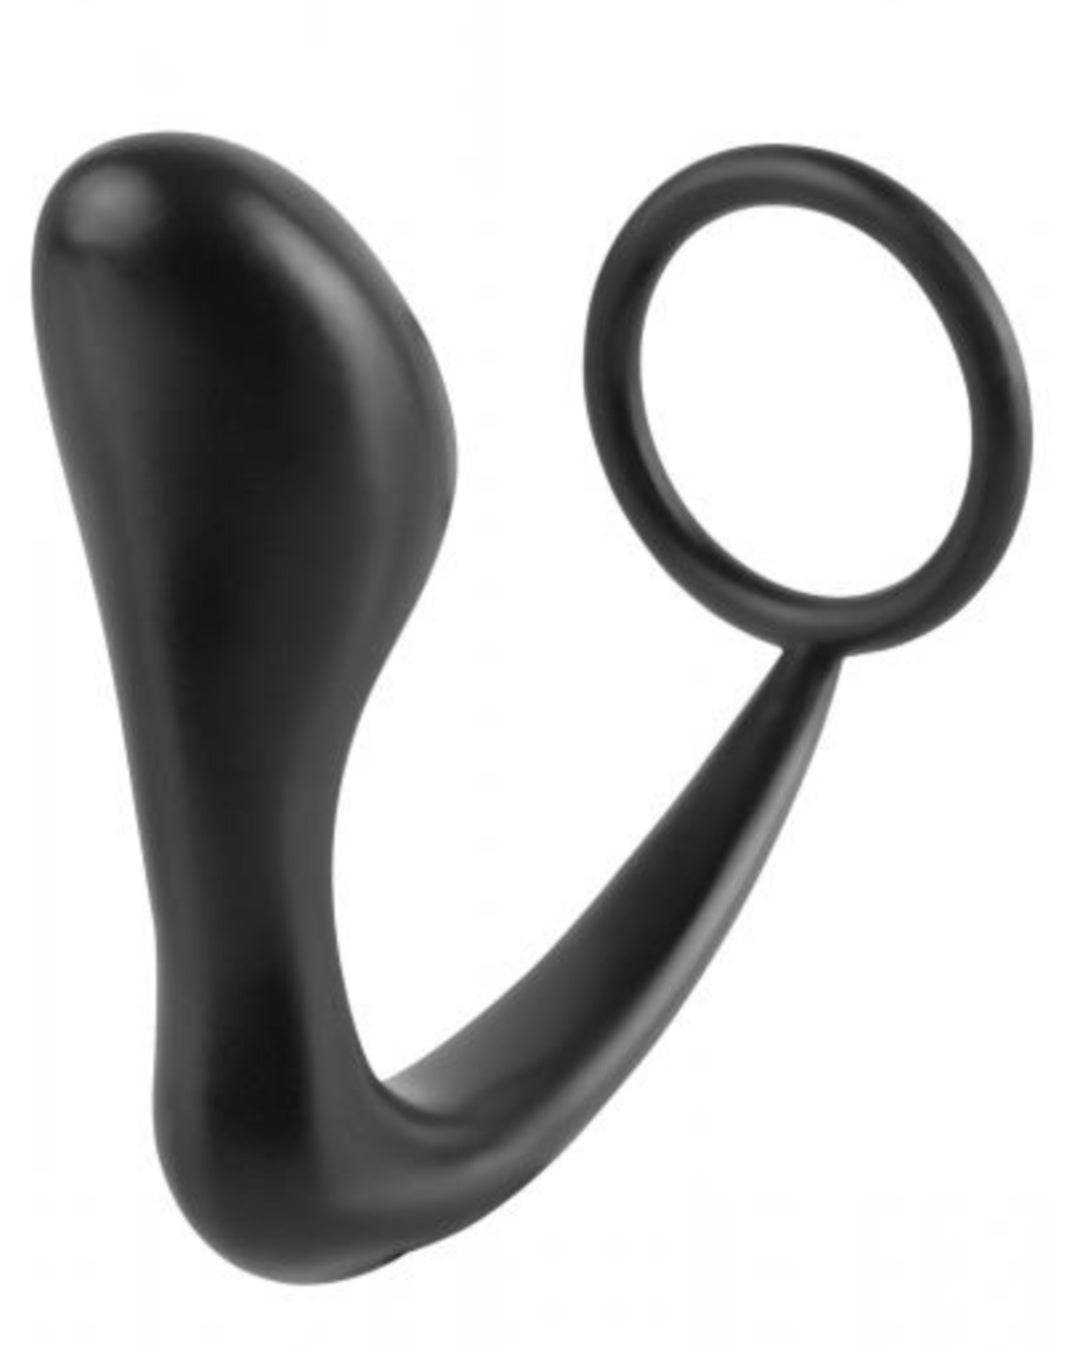 Anal Fantasy Ass-Gasm Silicone Cock Ring Butt Plug